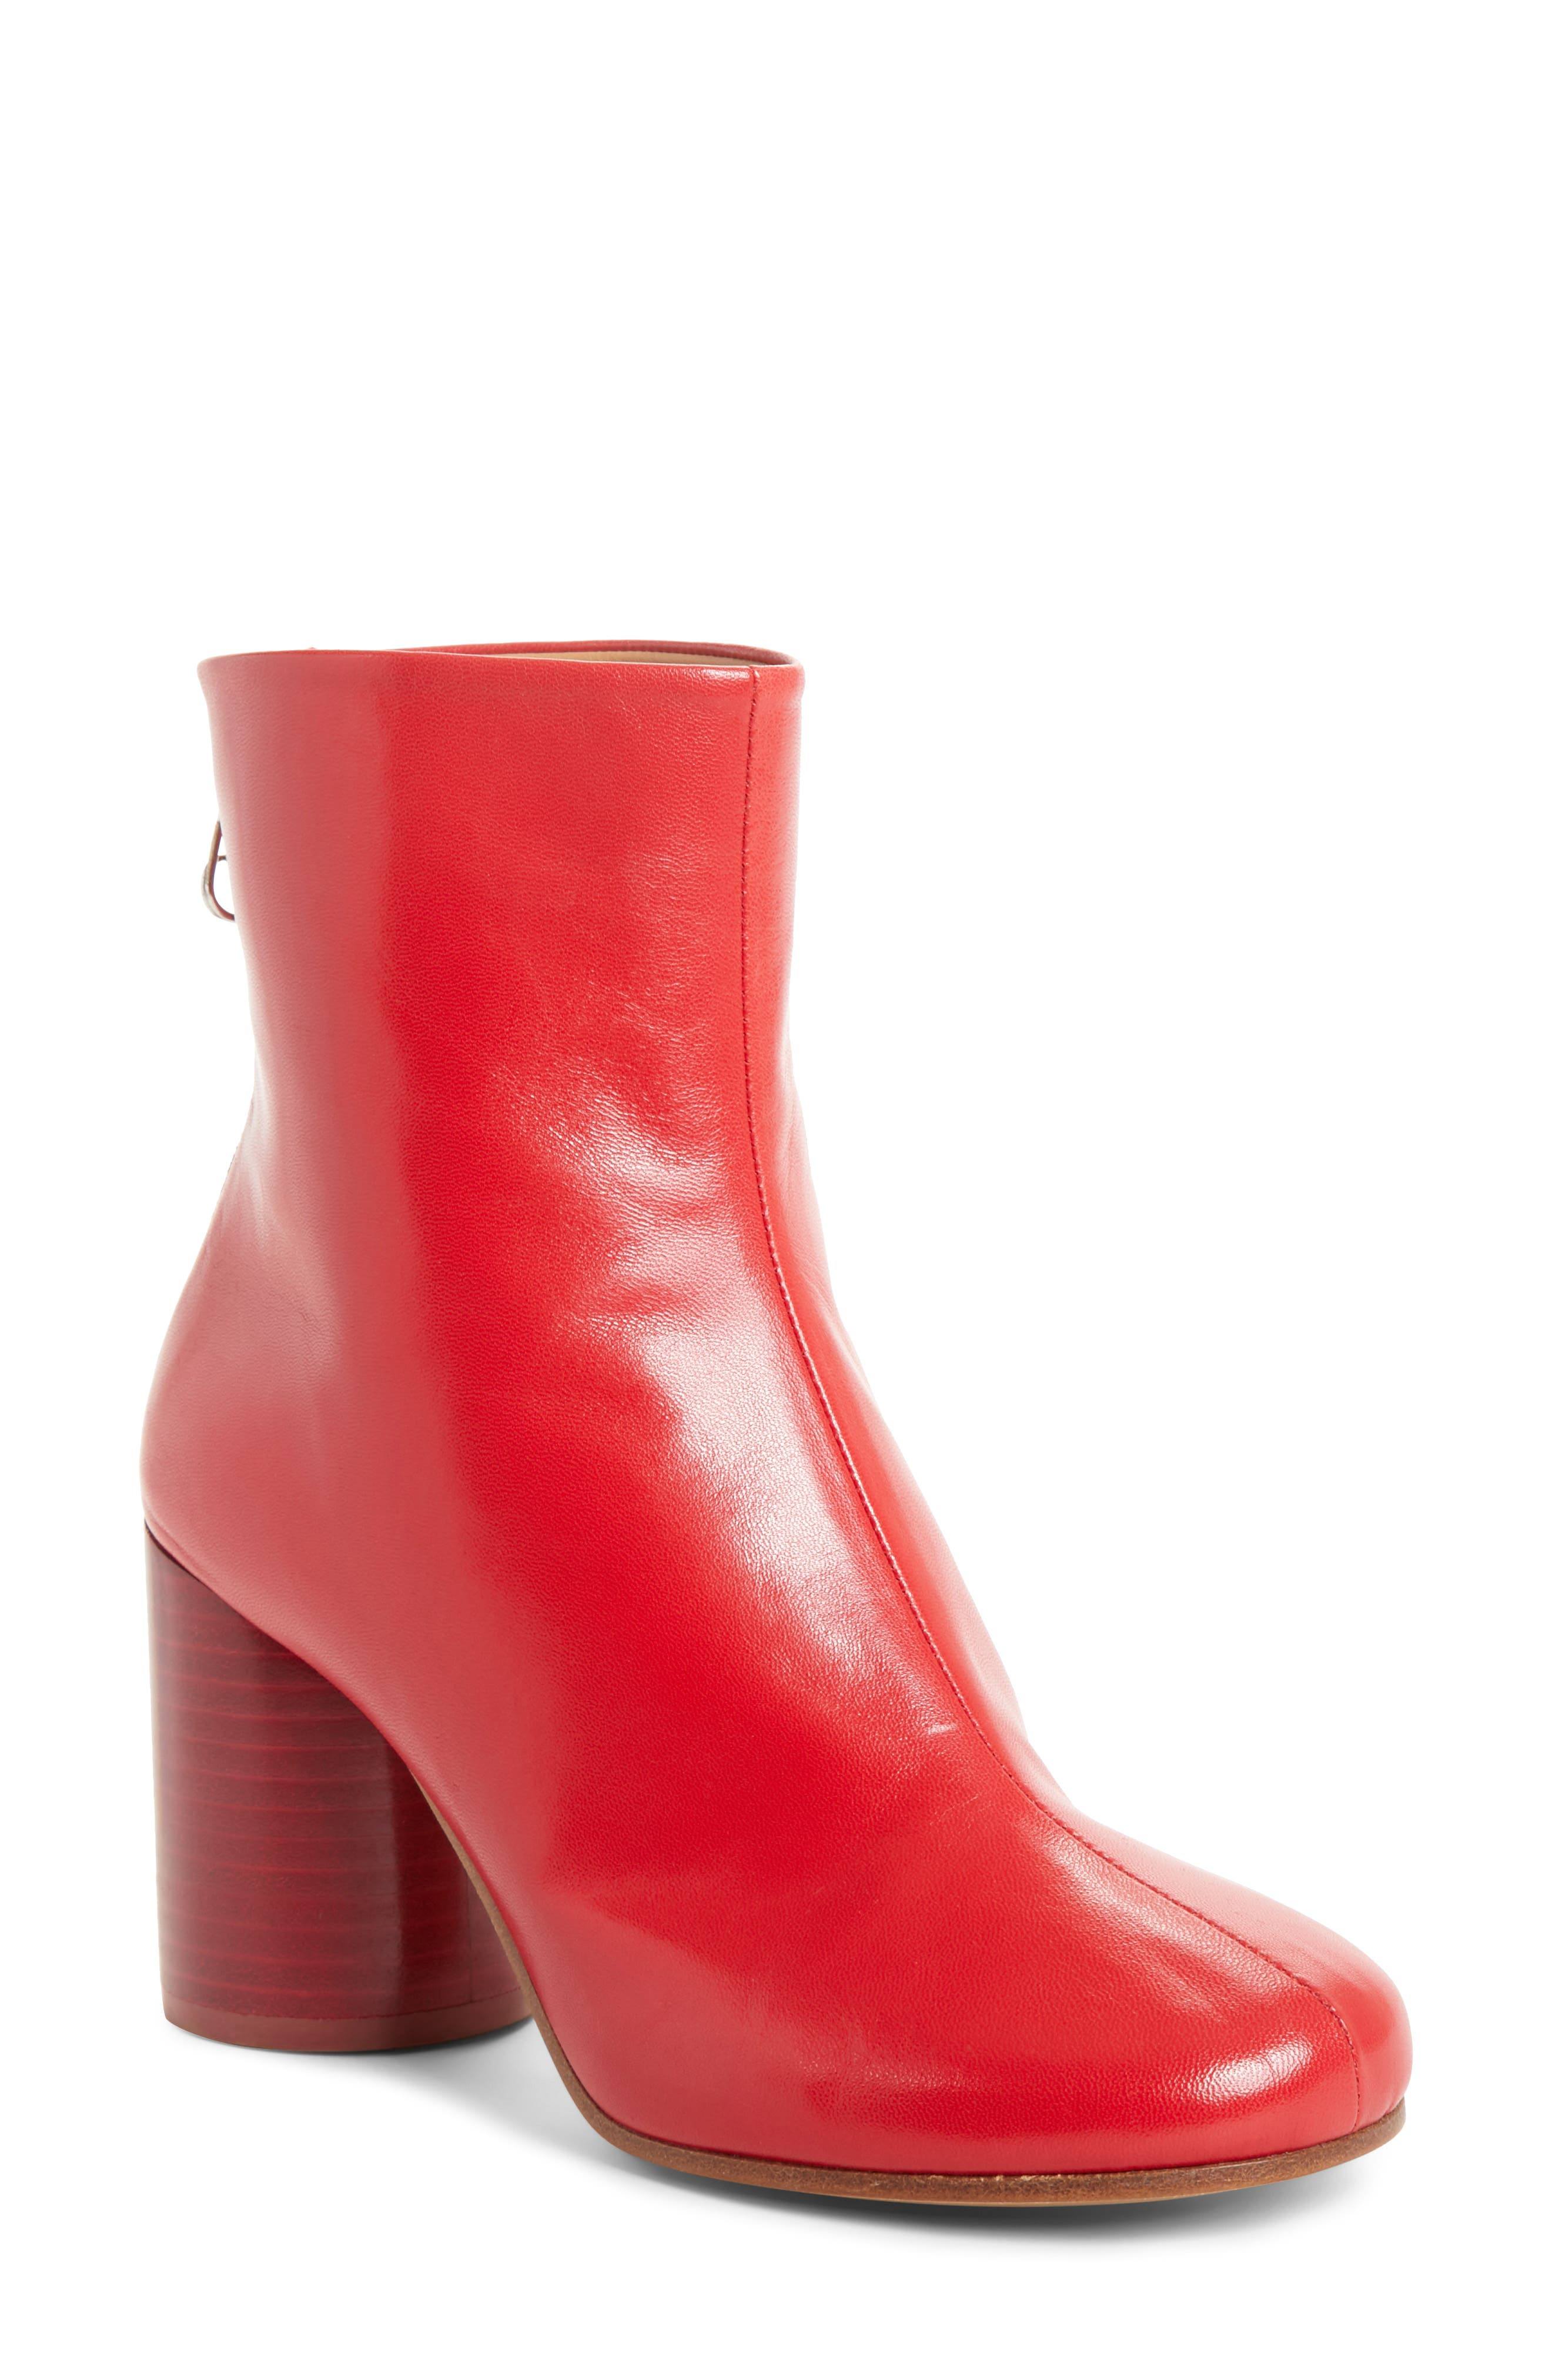 Round Heel Ankle Boot,                         Main,                         color, 600